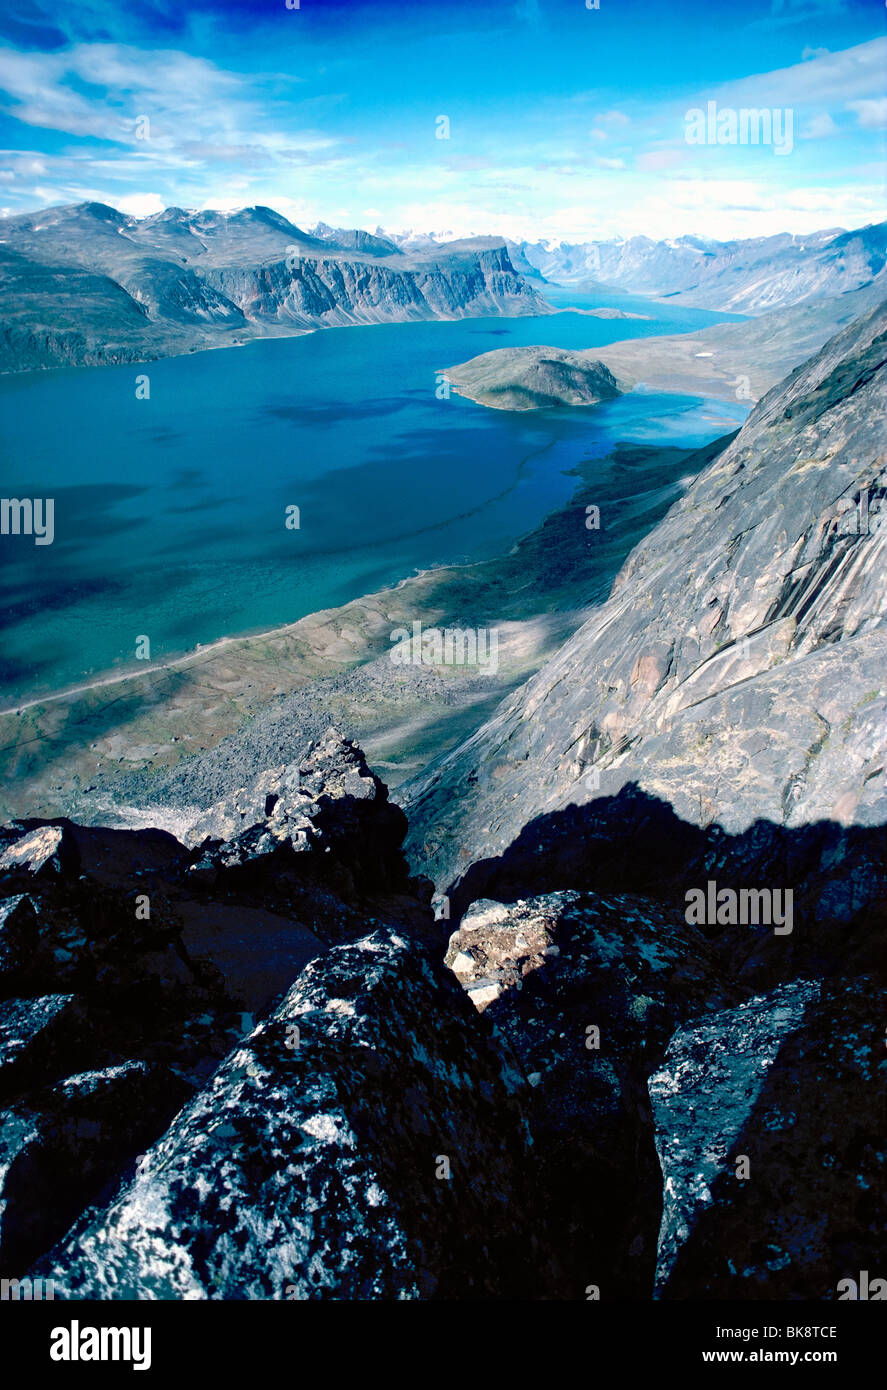 High view of Pangnirtung Fiord towards Auyuittuq National Park from Mt. Duvall, Pangnirtung, Baffin Island, Nunavut, Stock Photo